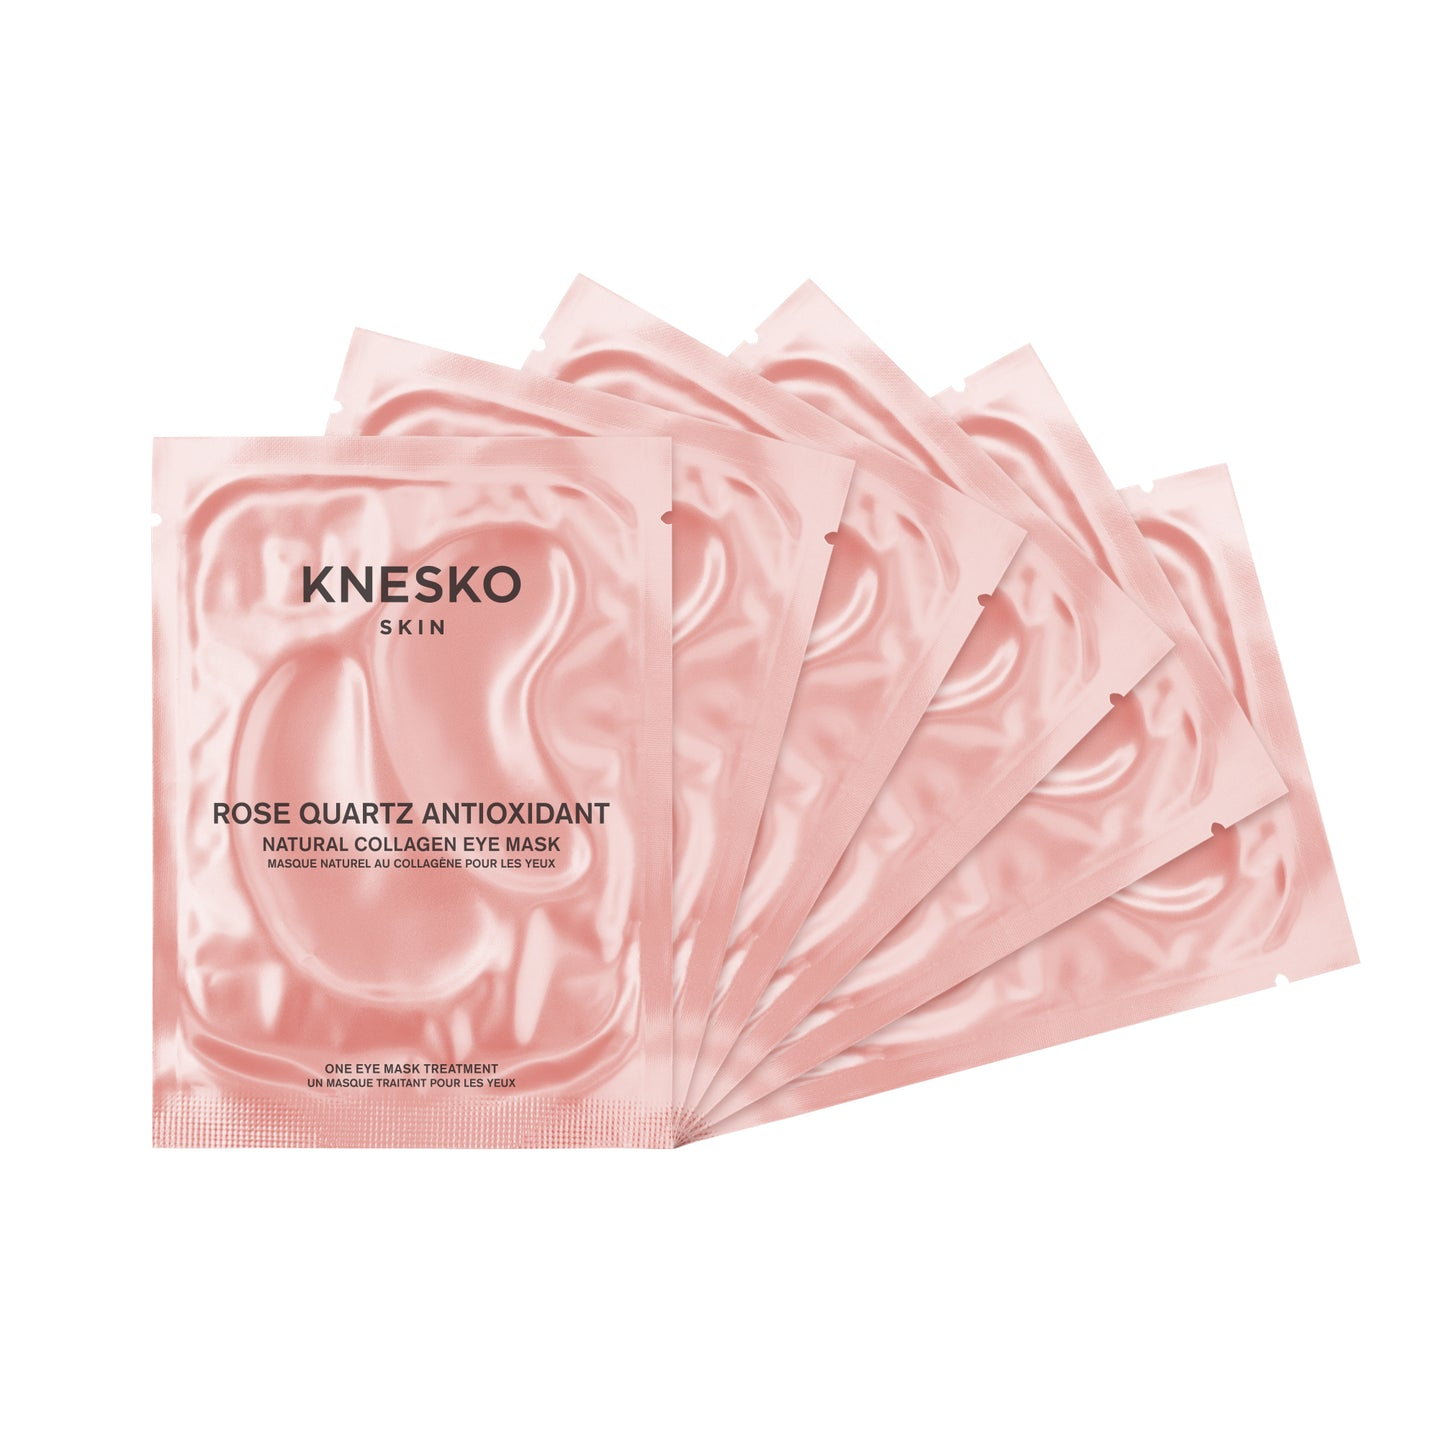 Rose Quartz Antiox Eye Mask (6 treatments)